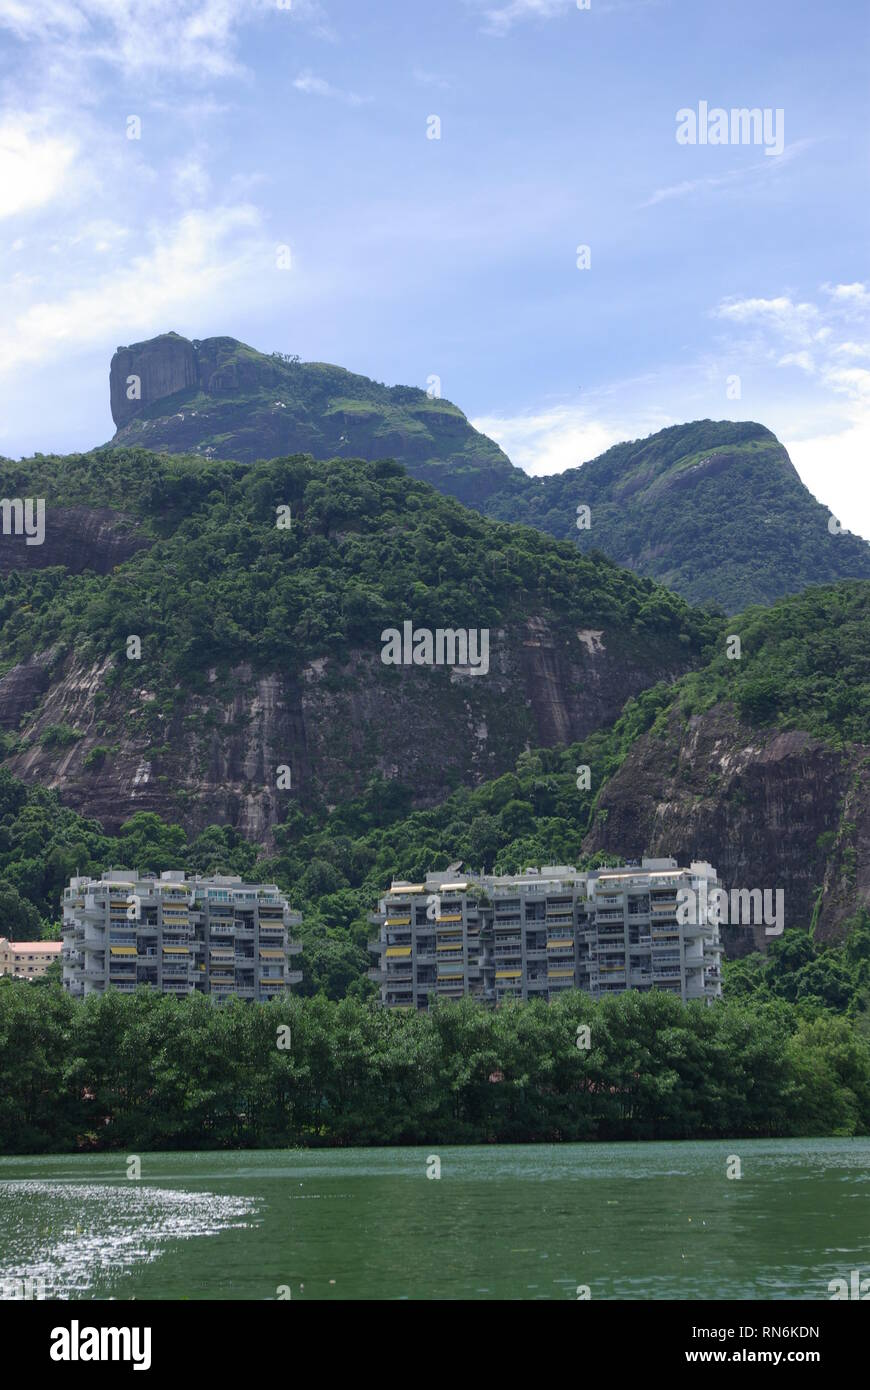 Lagune Tijuca with multistory building and mountain - Stock Image